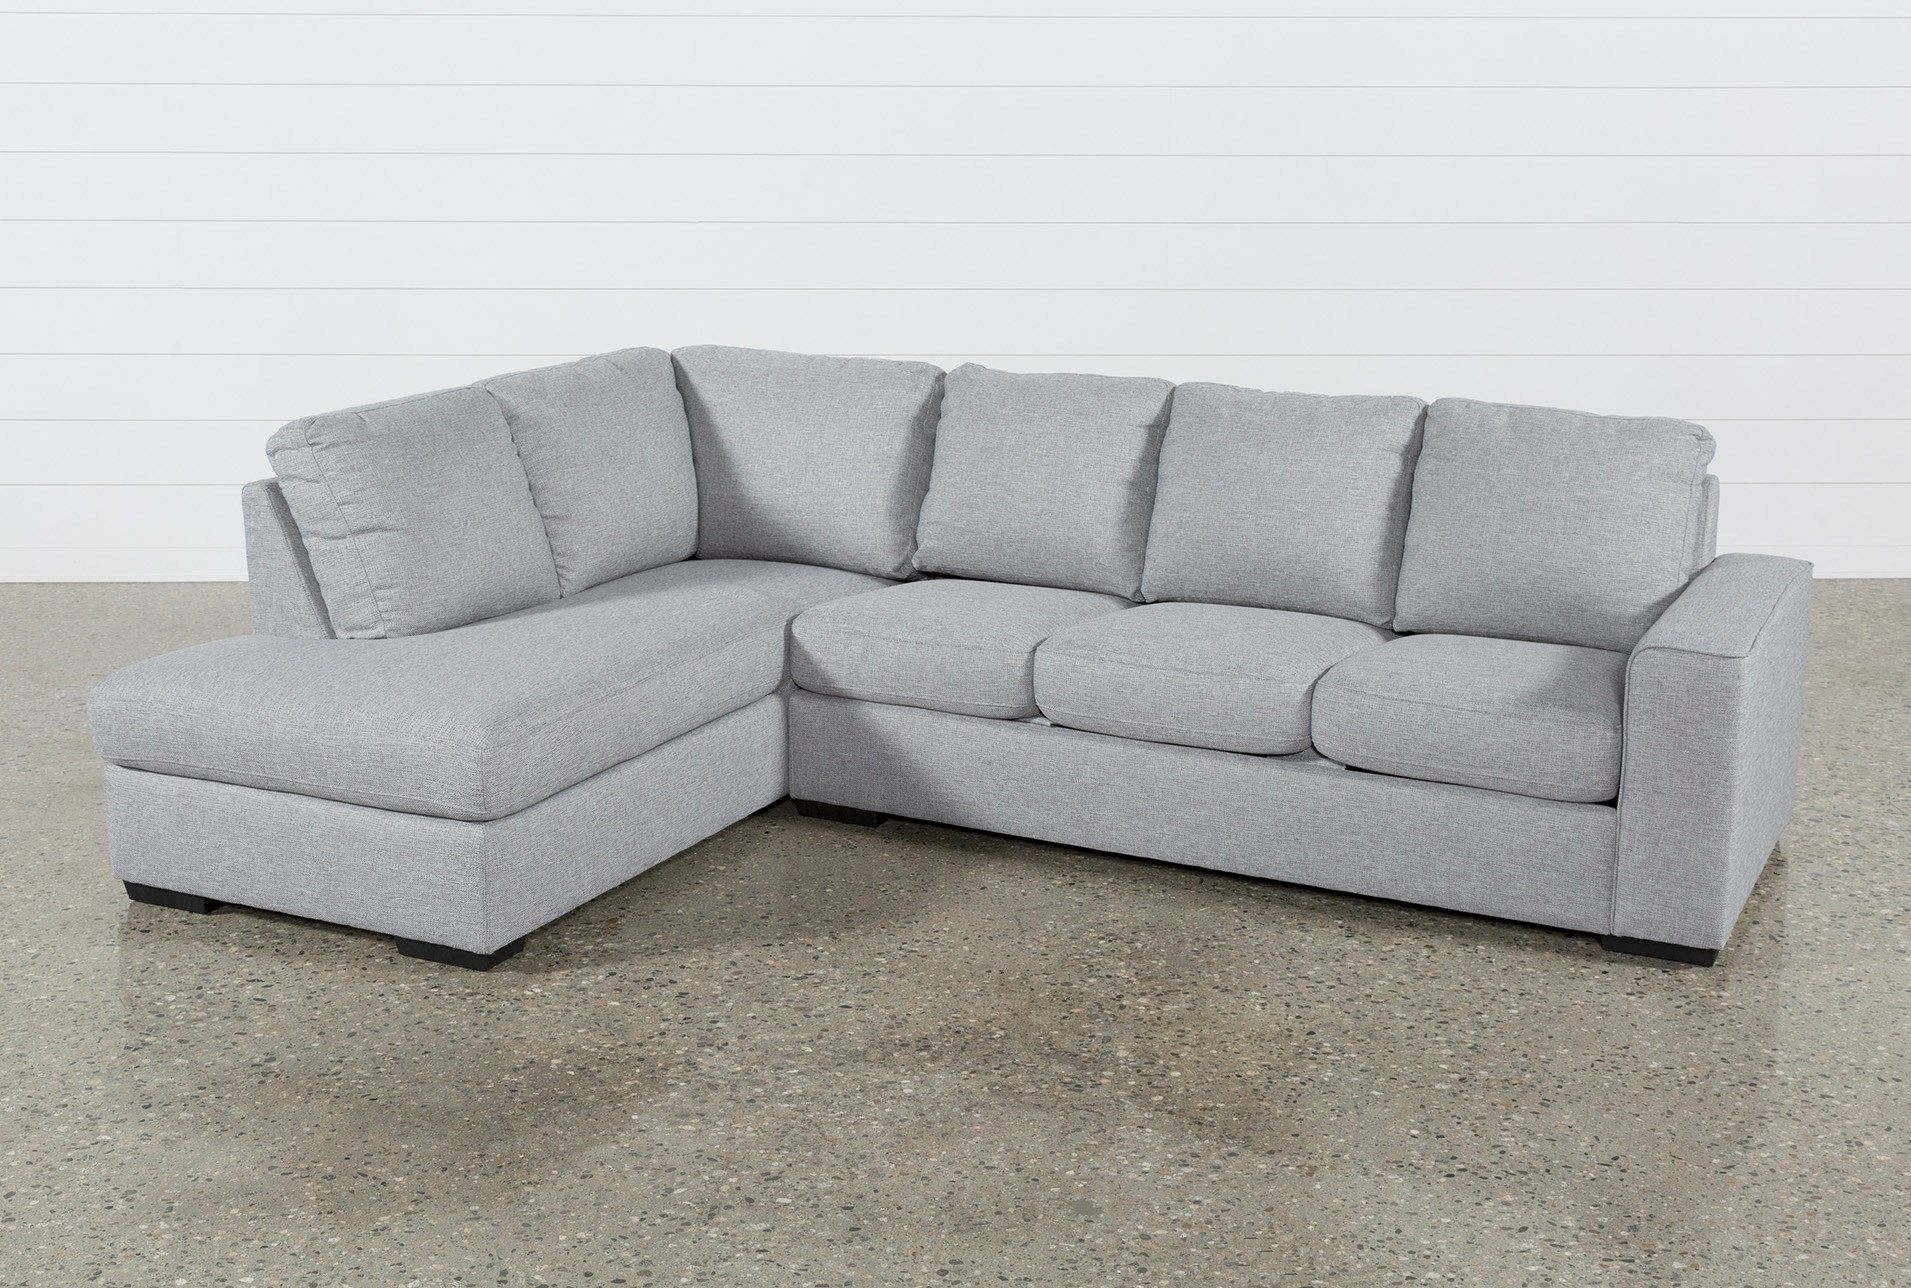 Lucy Grey 2 Piece Sectional W/laf Chaise | Tx House | Pinterest in Lucy Grey 2 Piece Sleeper Sectionals With Laf Chaise (Image 21 of 30)